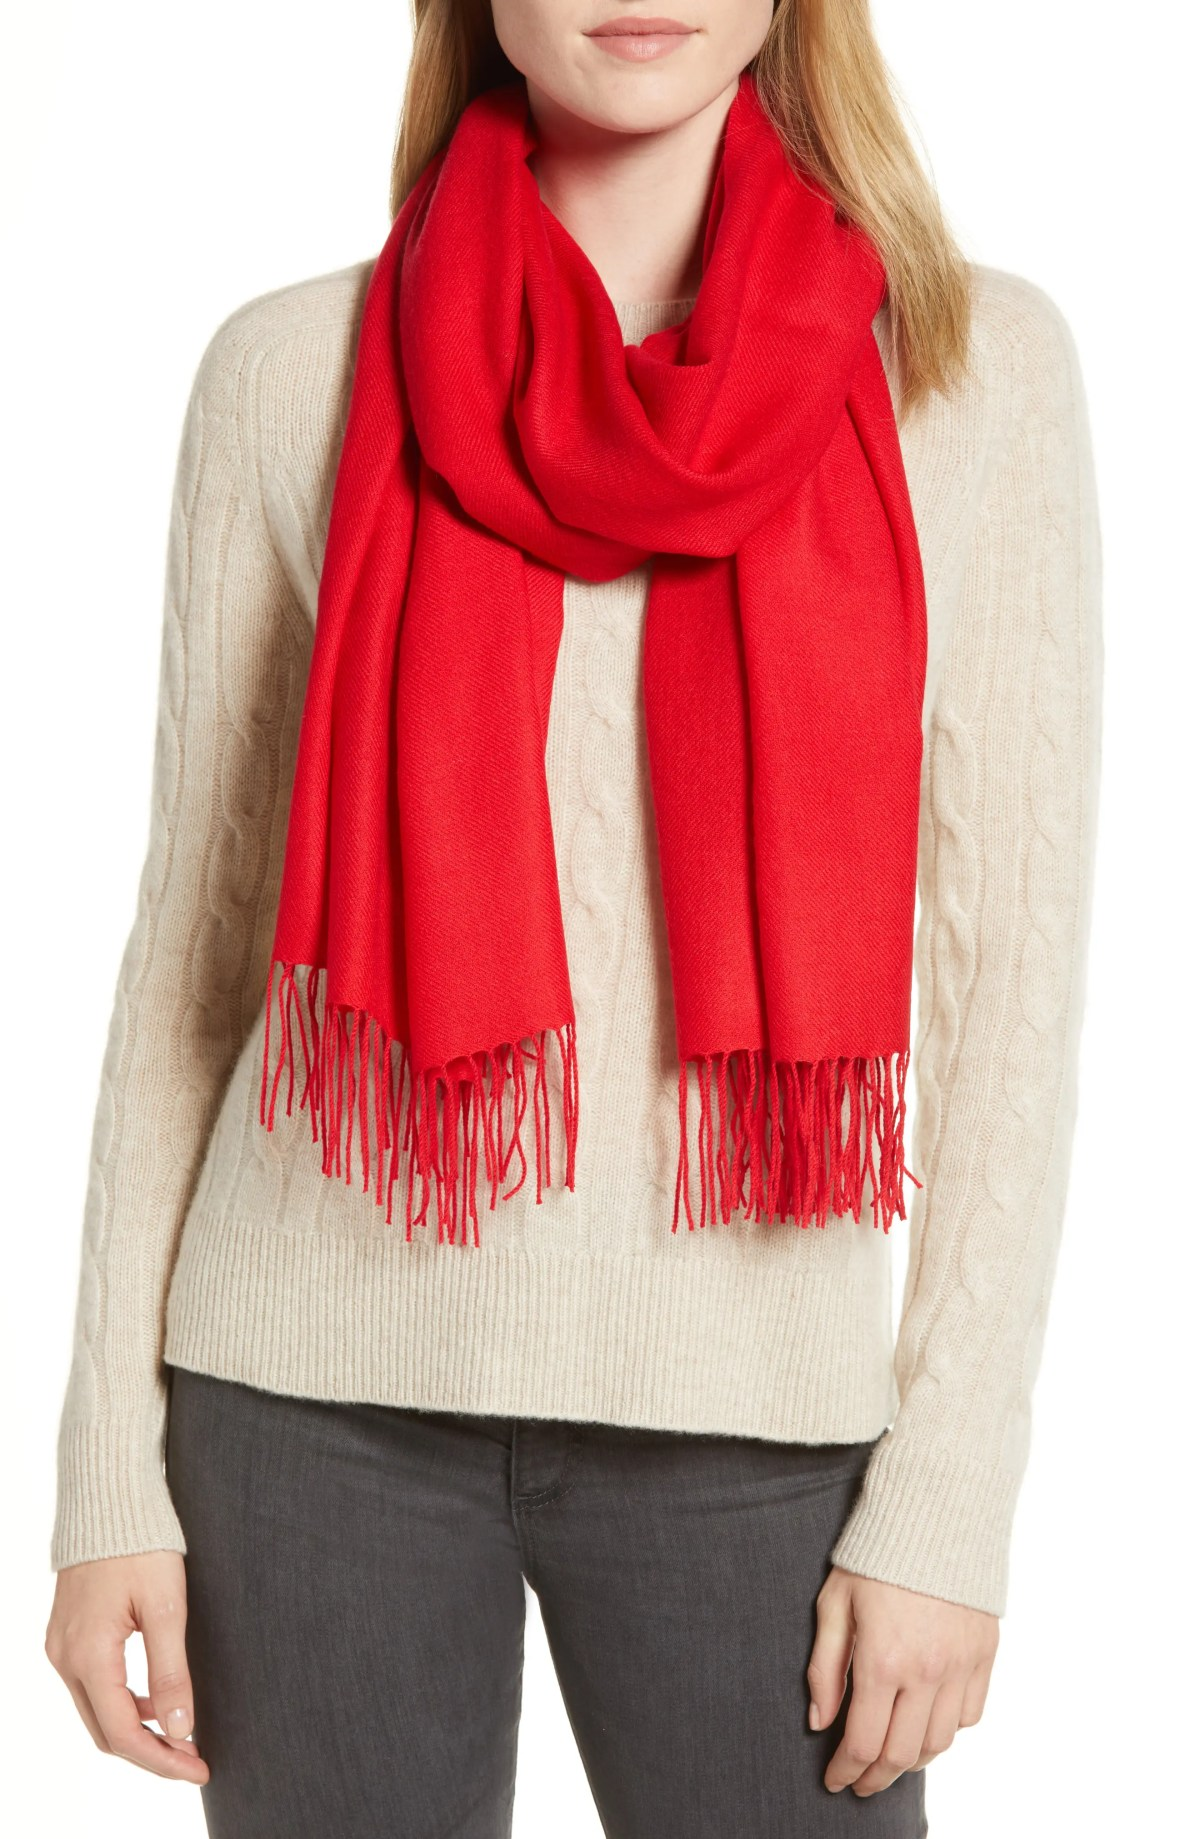 NORDSTROM Tissue Weight Wool & Cashmere Scarf, Main, color, RED CHINOISE